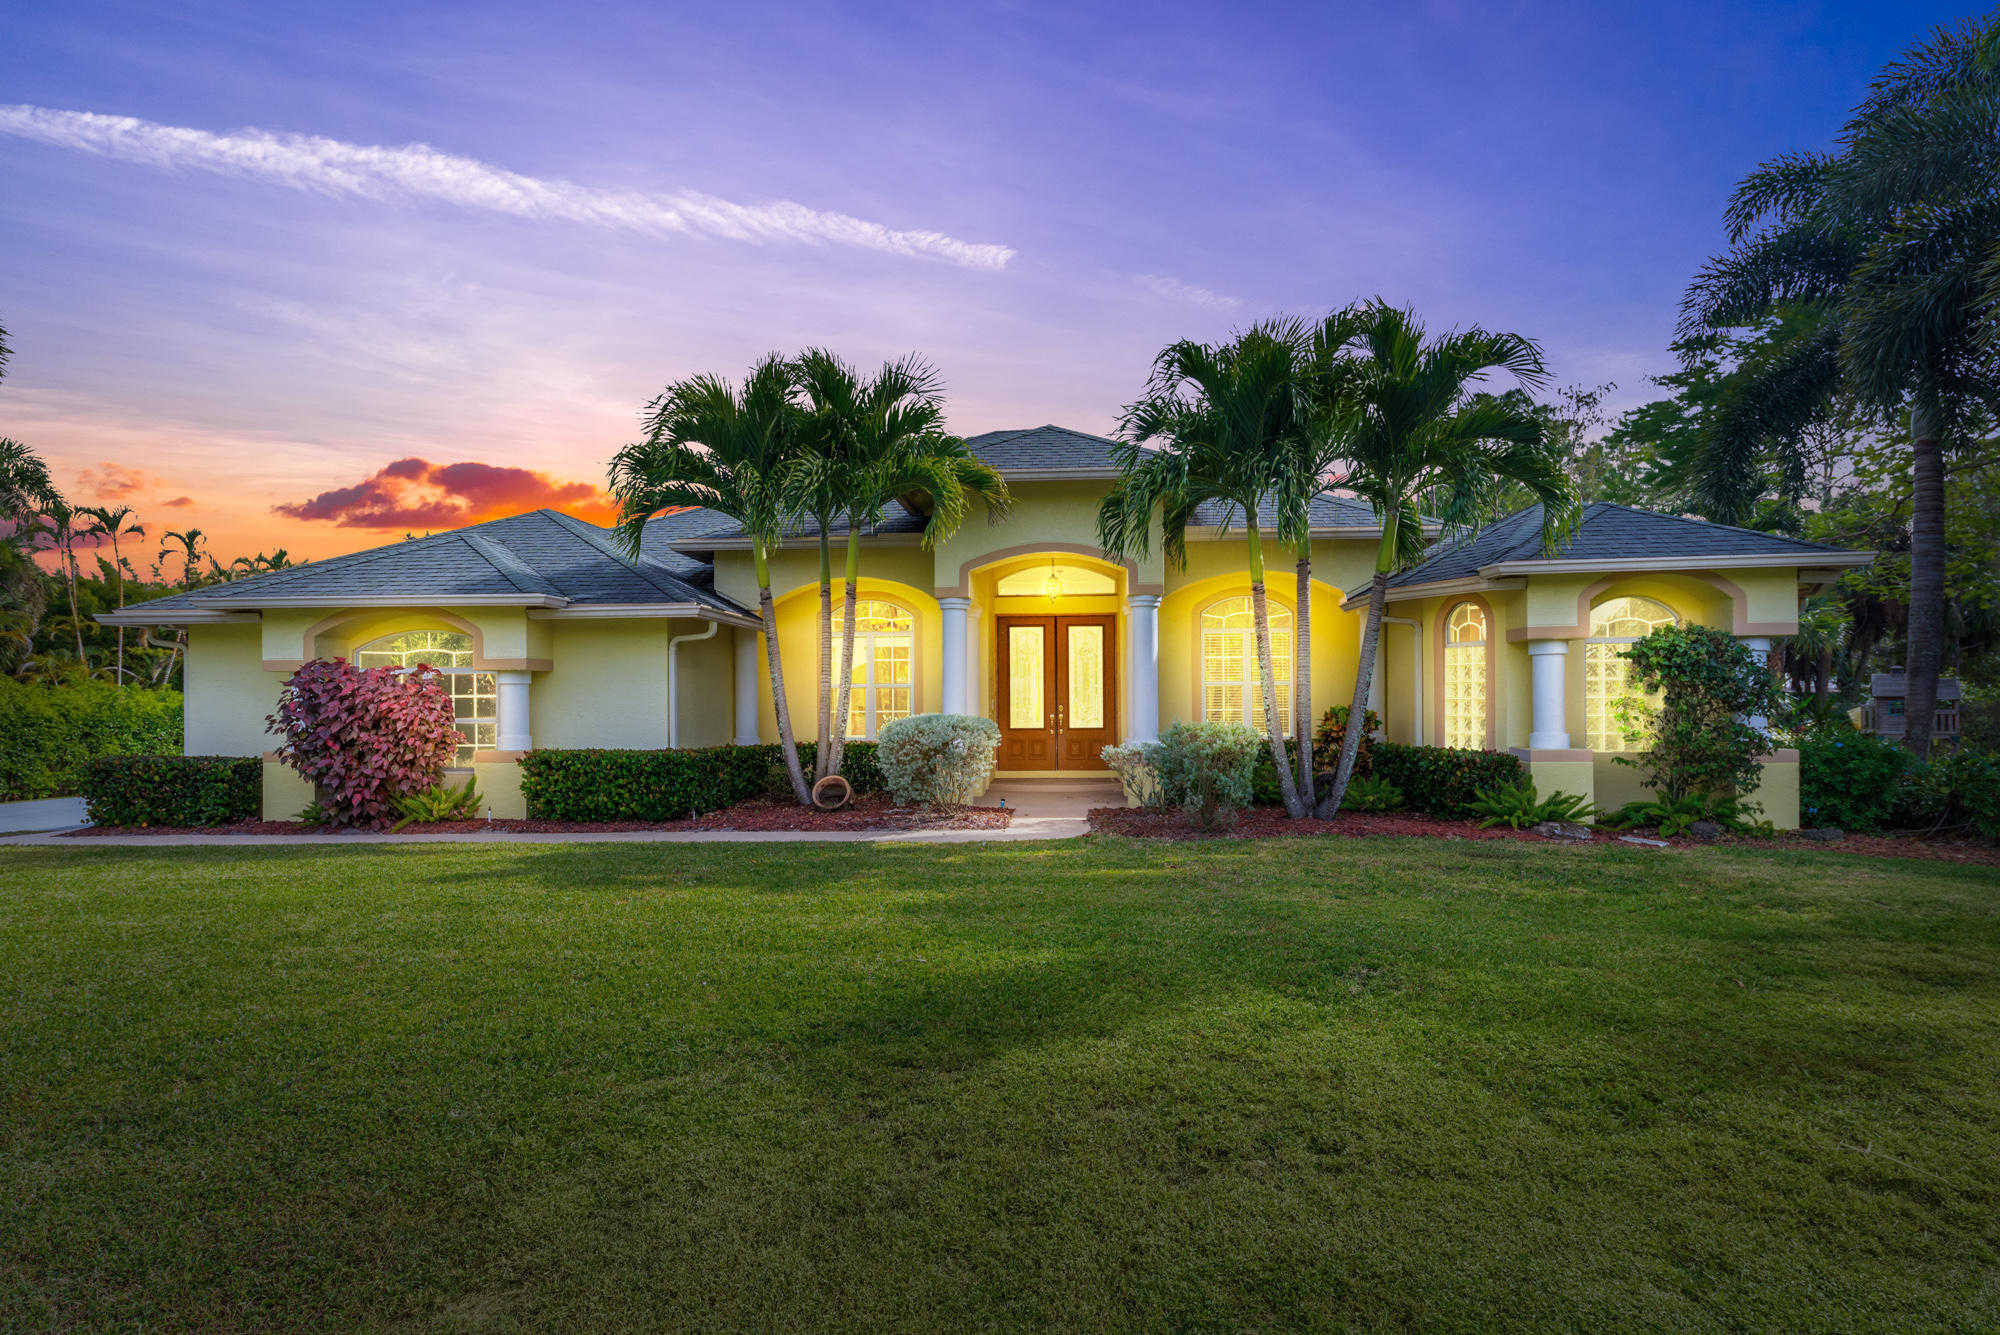 Homes for Sale in Jupiter - Pavon Realty Group